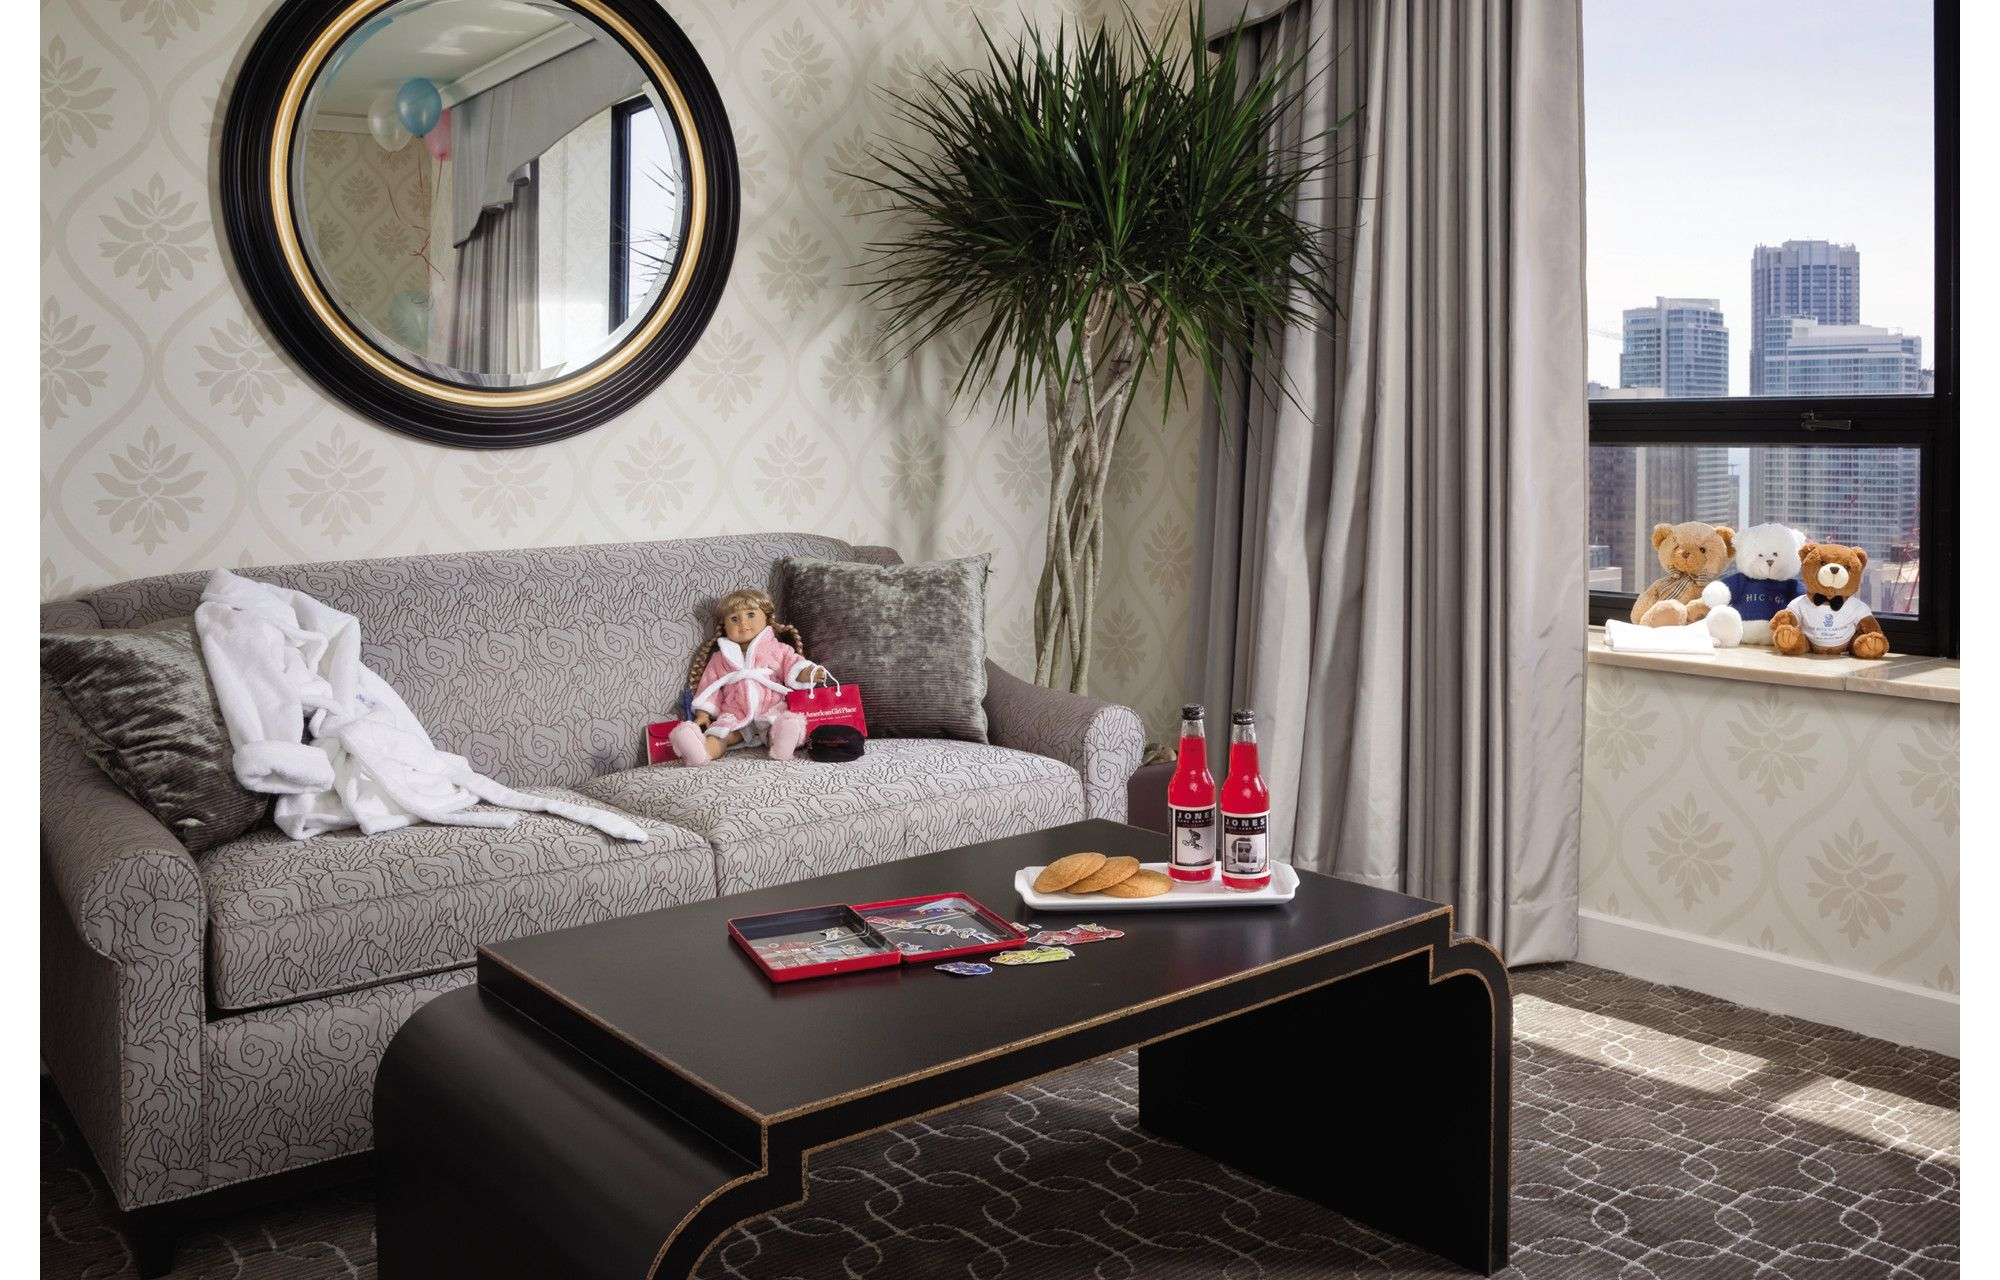 American Girl Package | The Ritz-Carlton, Chicago